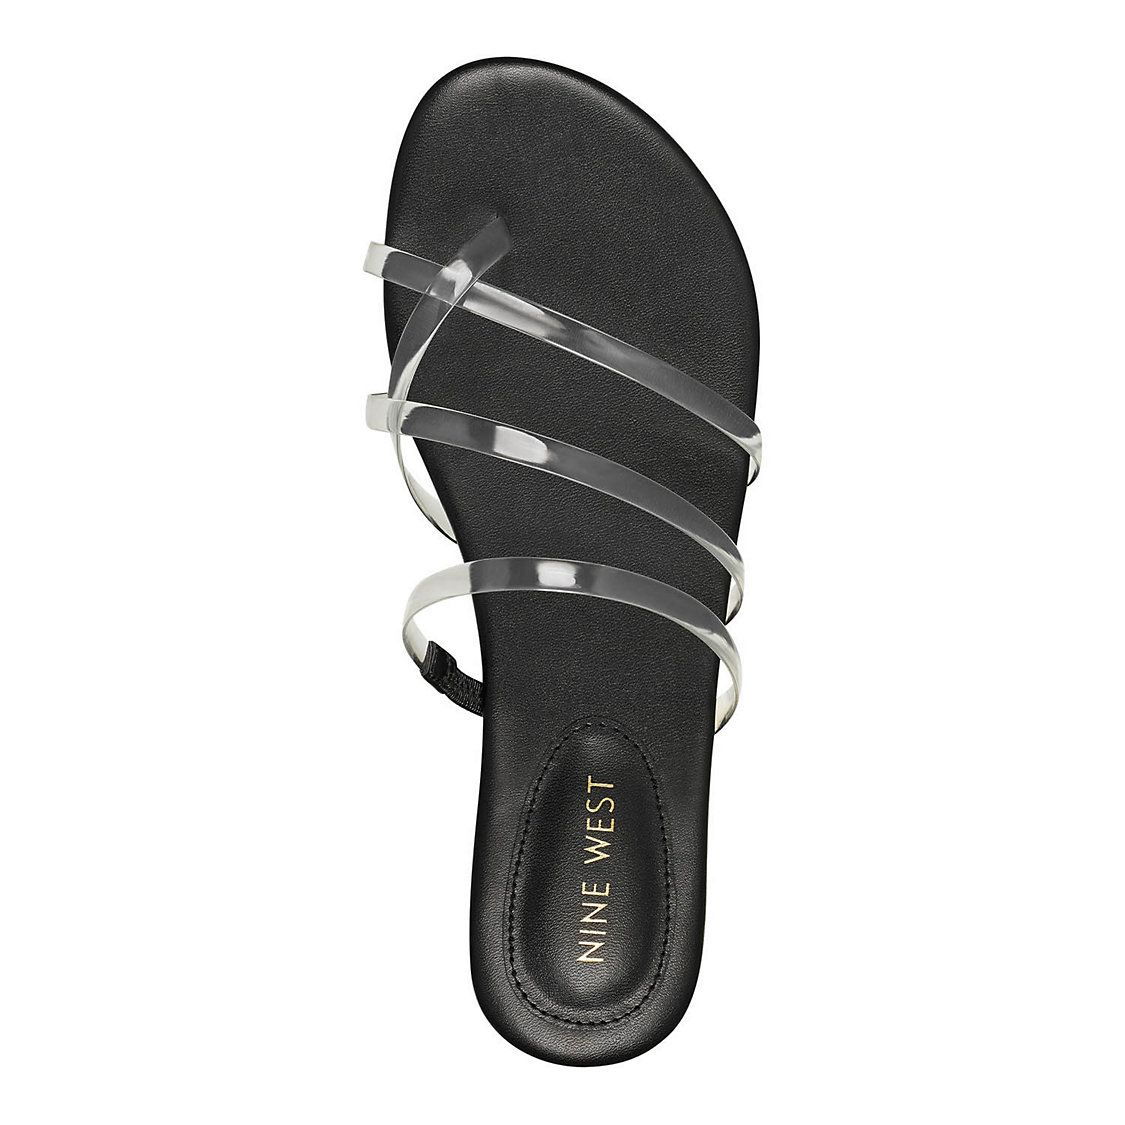 Strappy flats, Strappy sandals flat